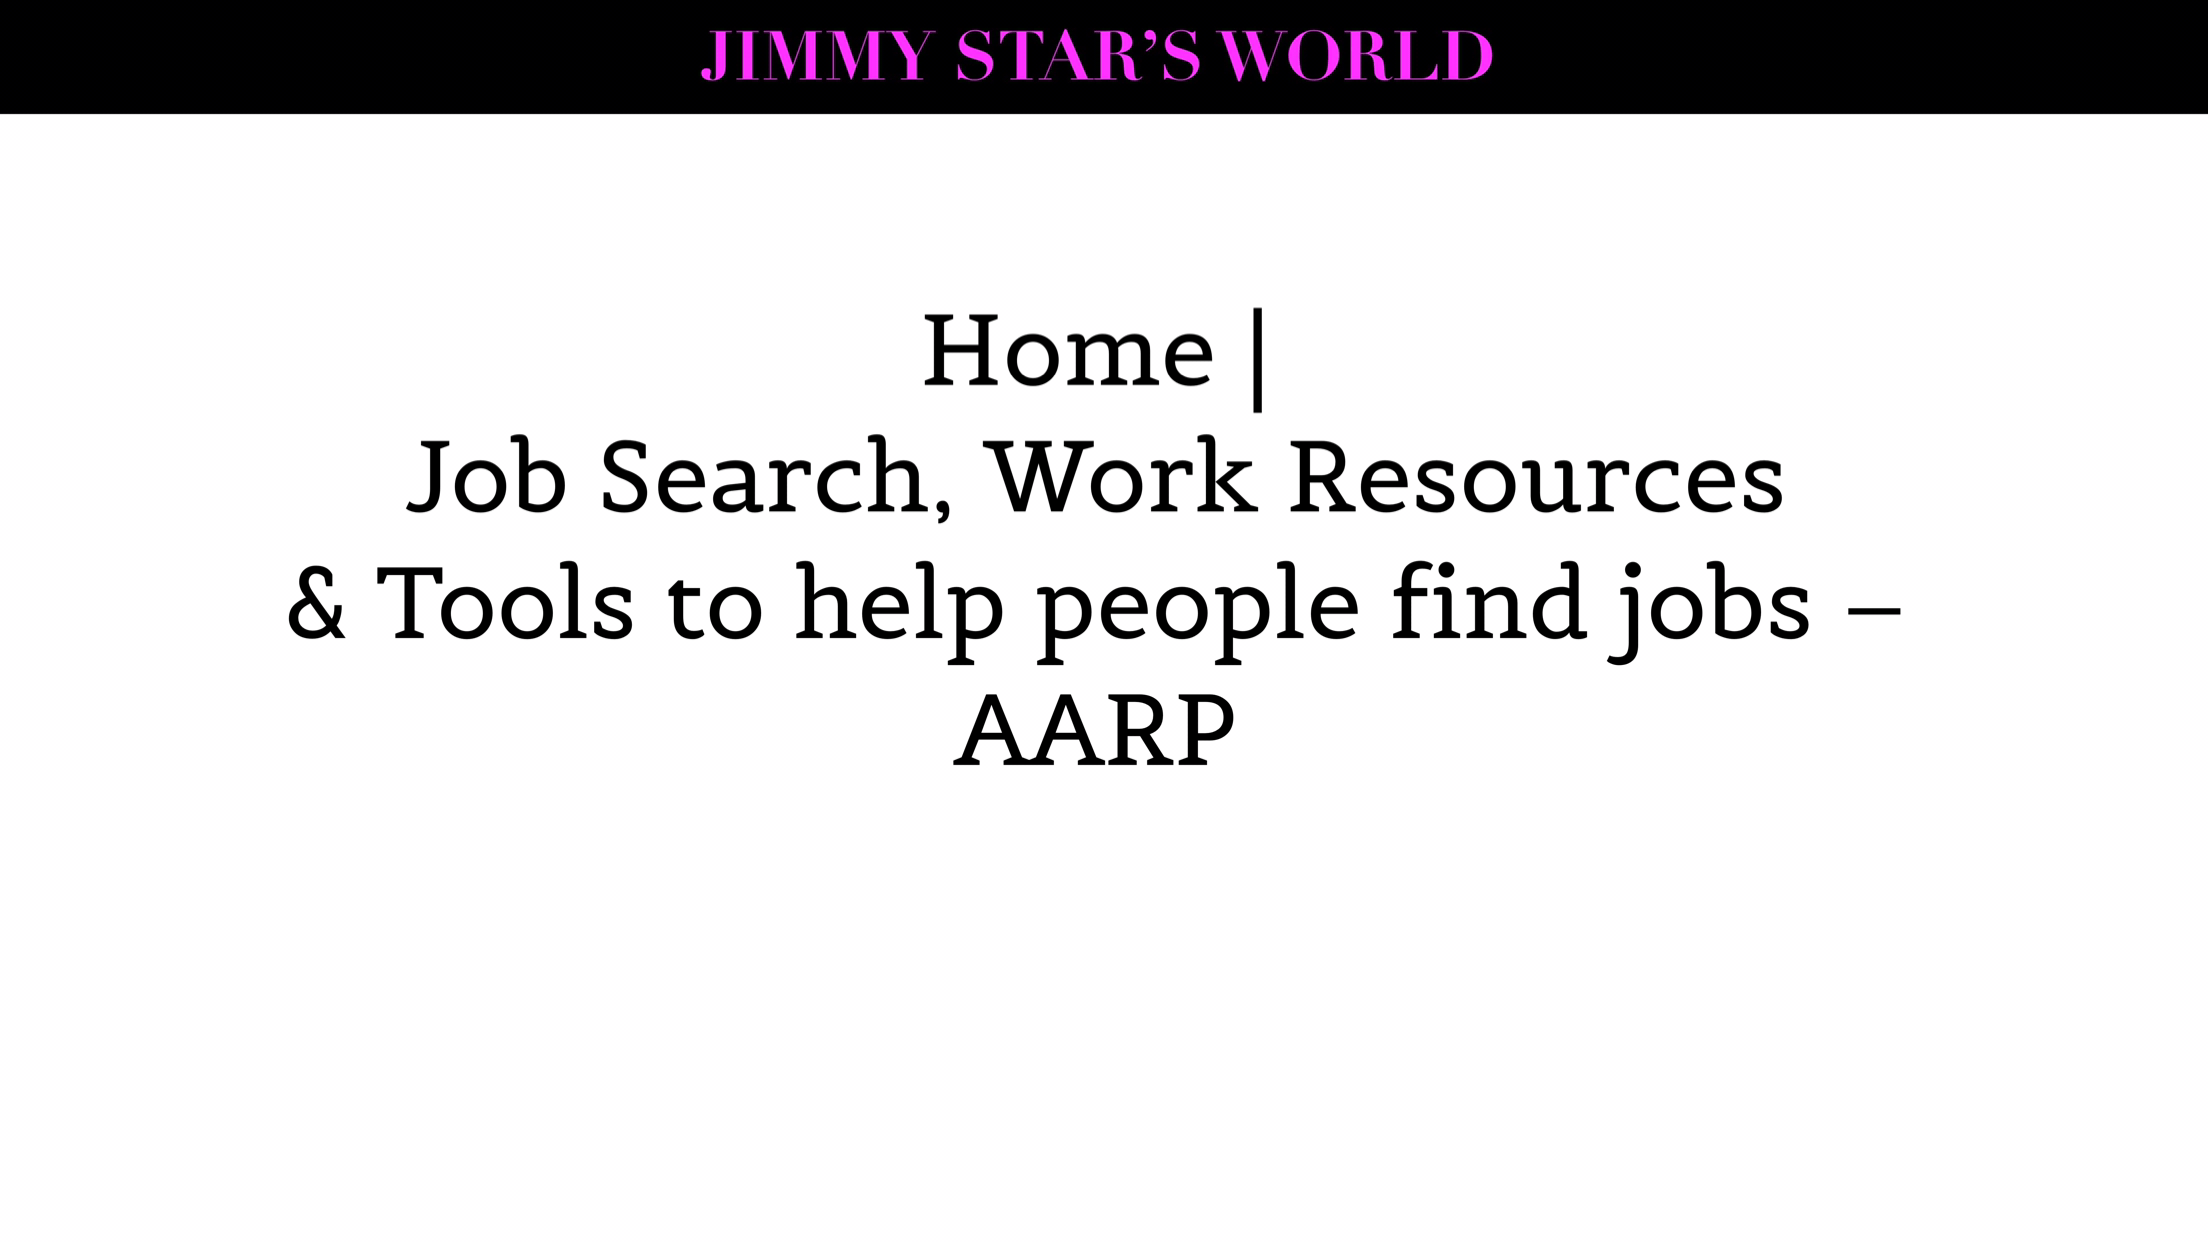 Home | Job Search, Work Resources and Tools to help people find jobs –via AARP